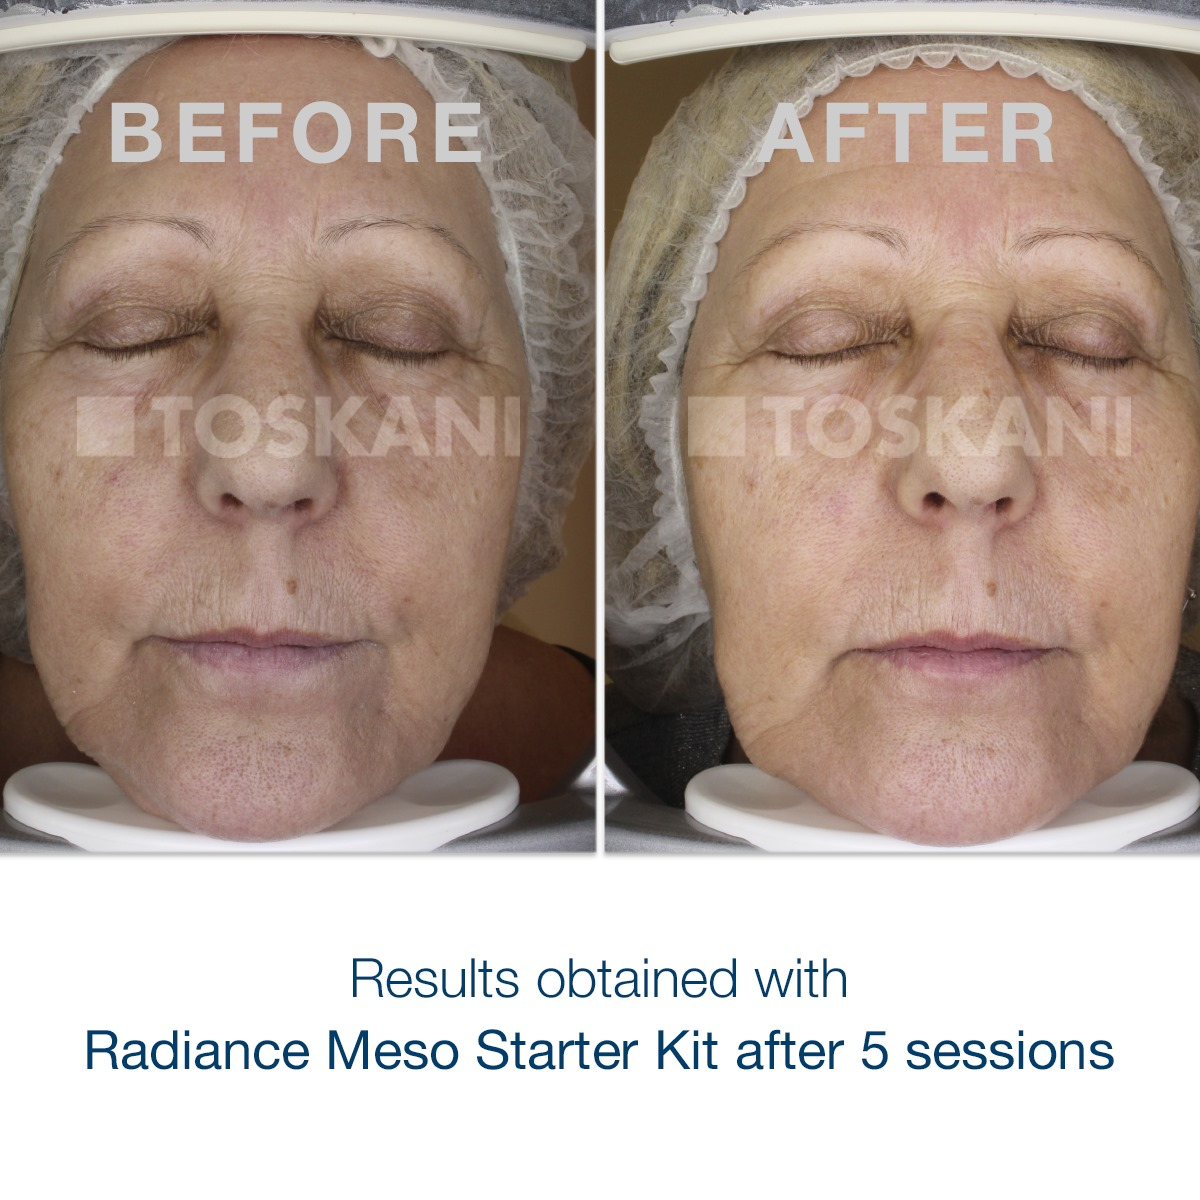 Radiance Meso-Results